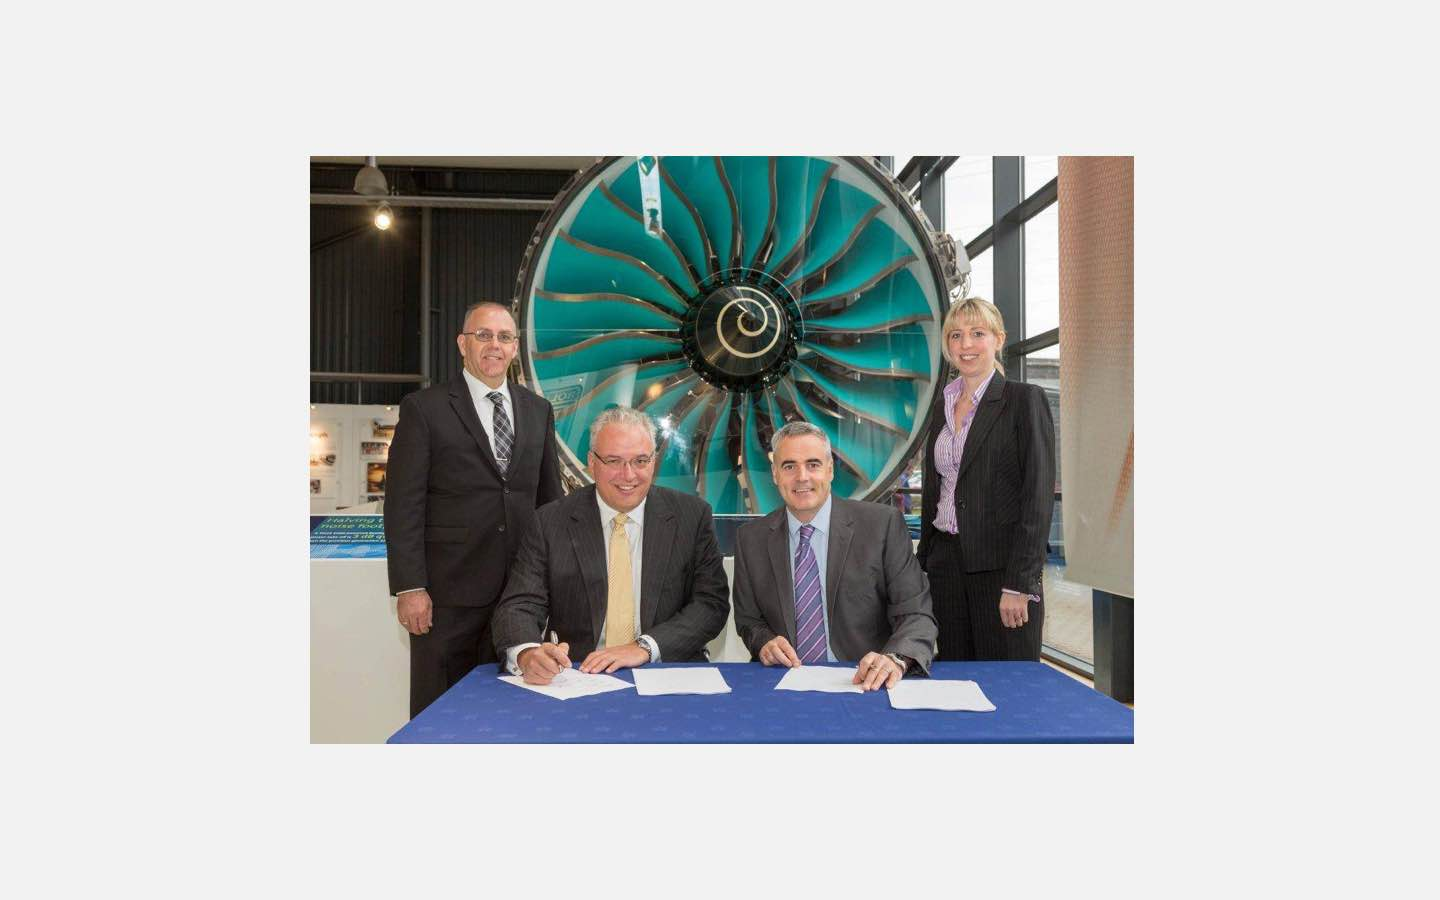 Image for Rolls-Royce Certificate of Approval - 2016-history@2x